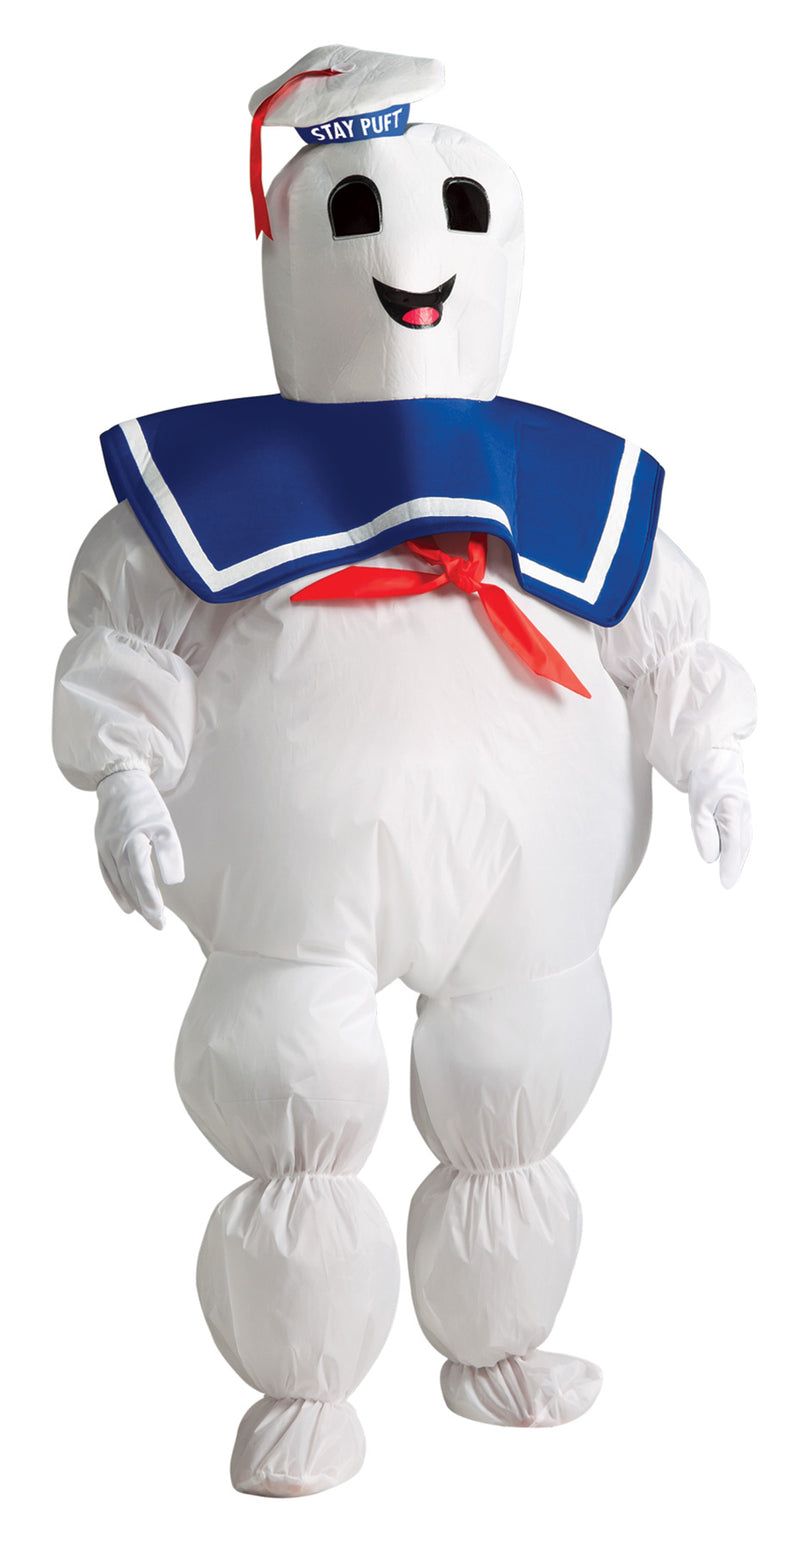 GHOSTBUSTERS - Child's Stay Puft Inflatable Costume-Costume-1-RU-884331-Classic Horror Shop